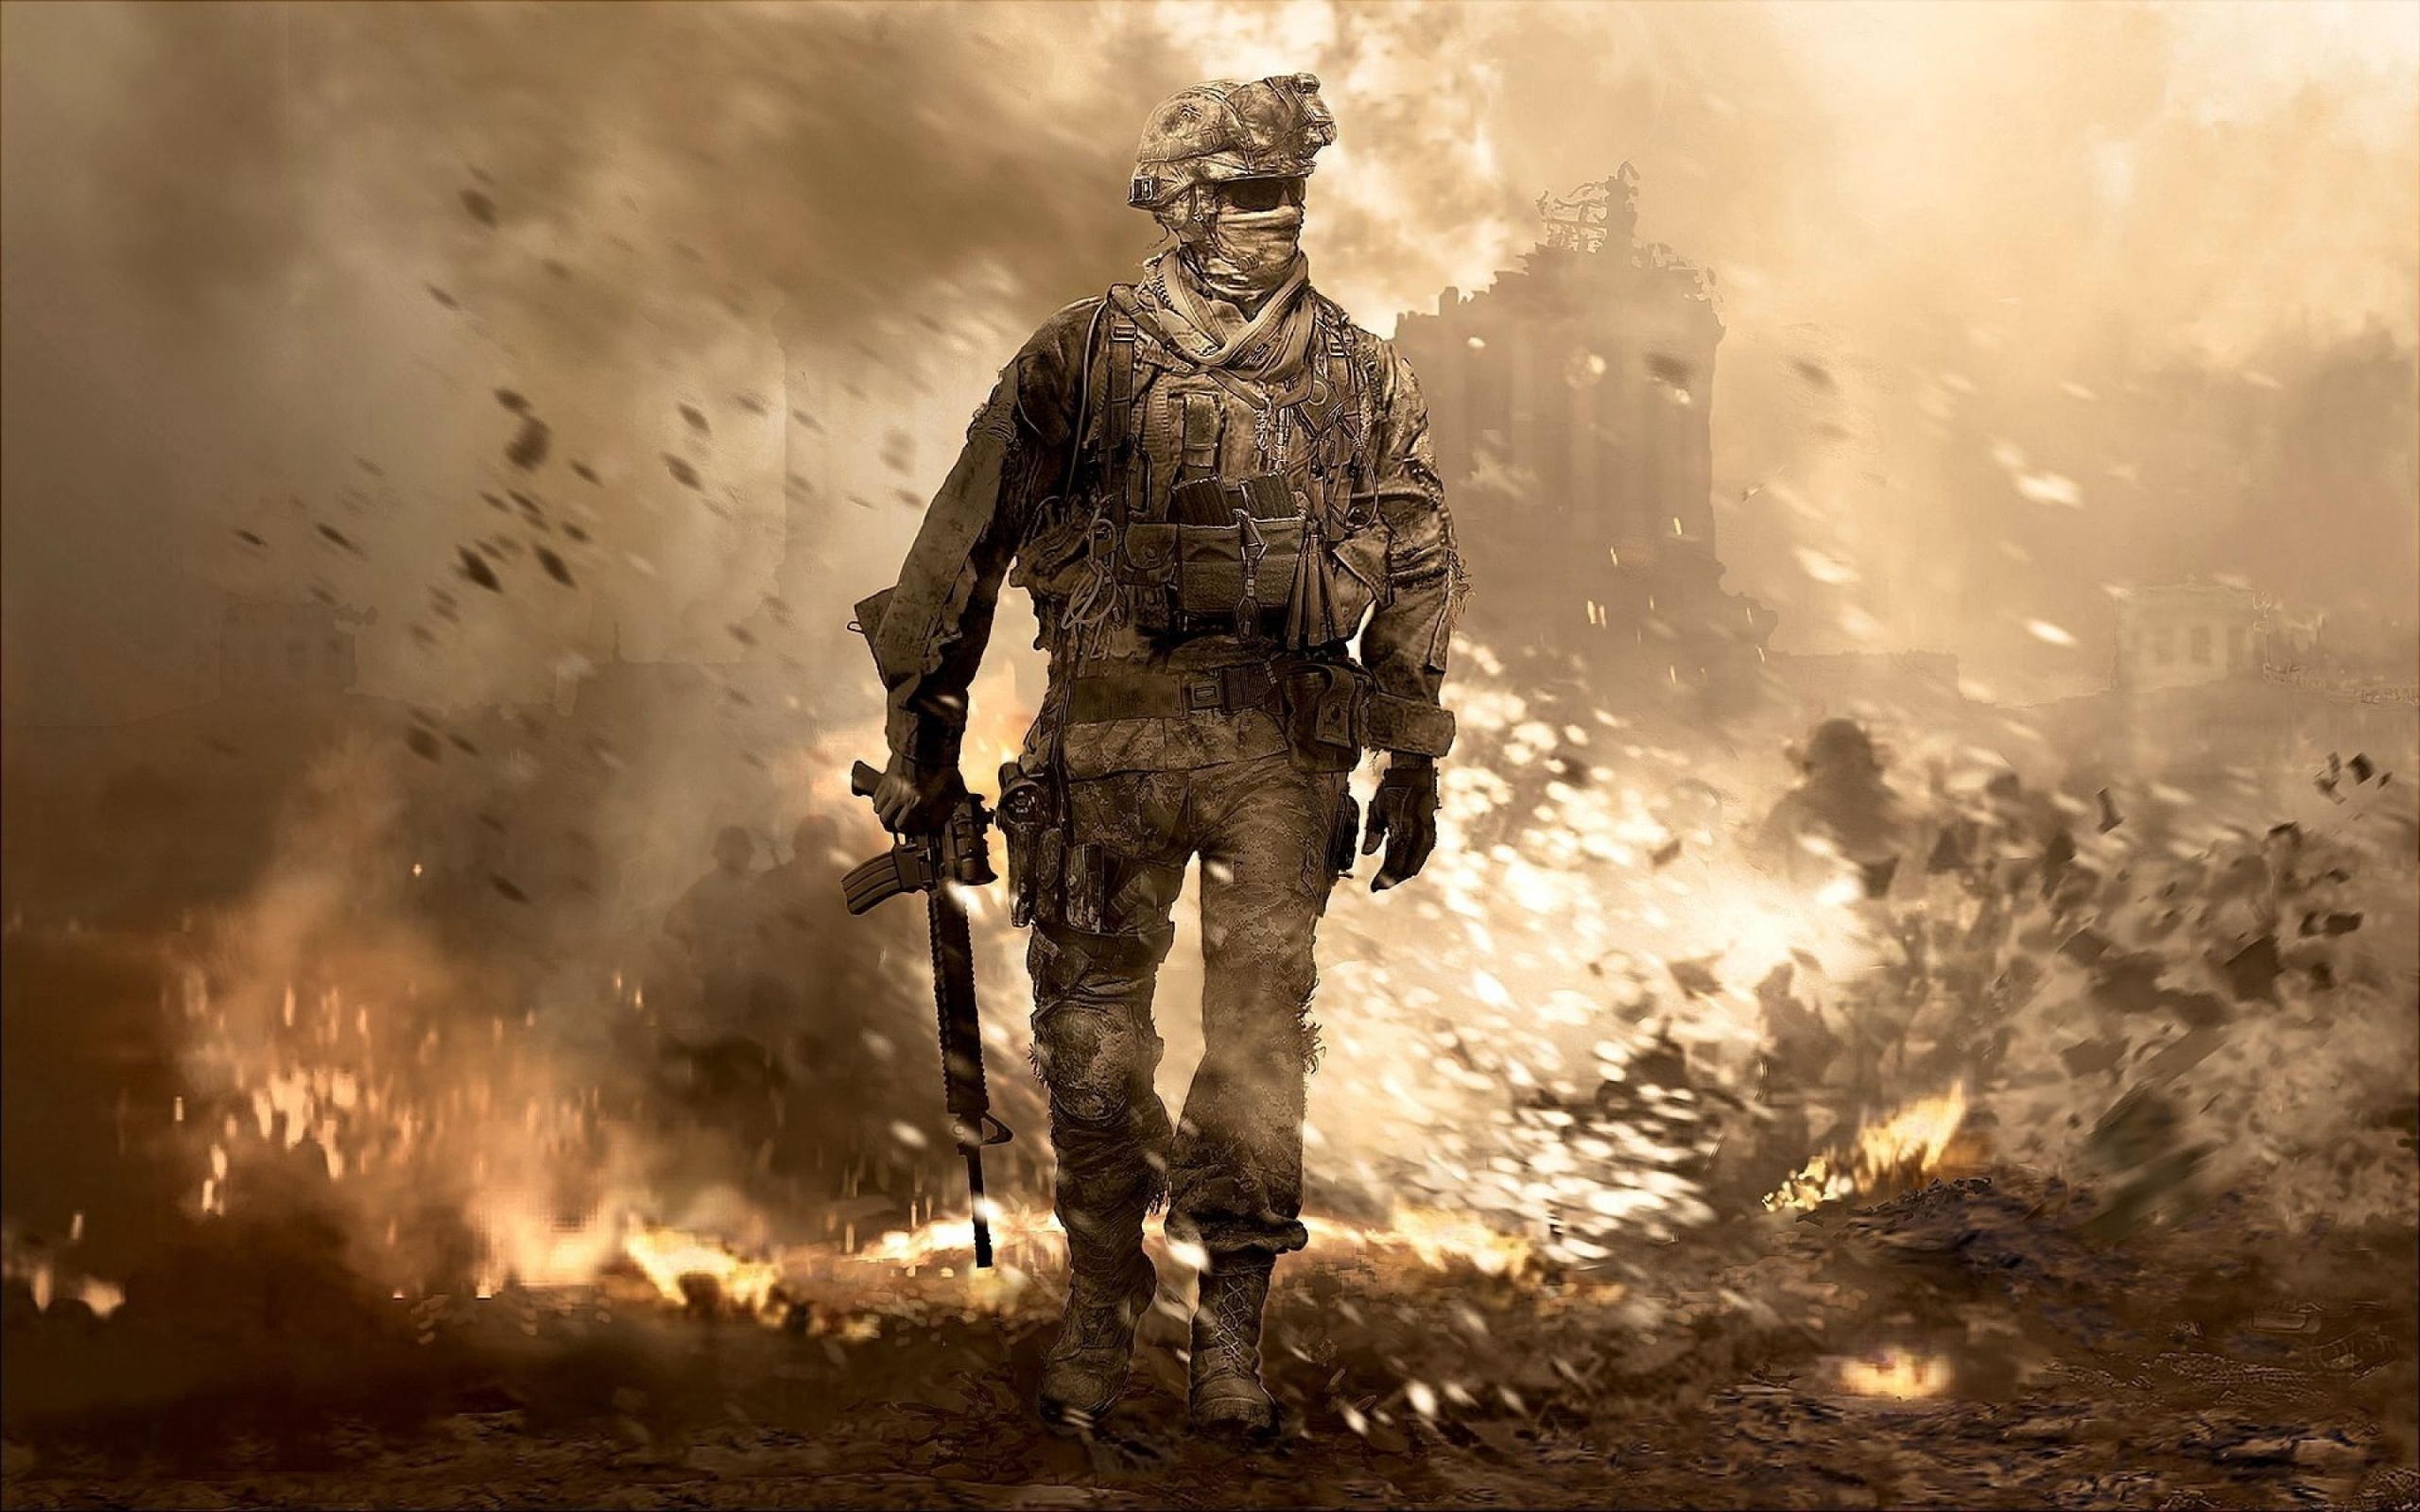 Call of Duty обои для рабочего стола ...: www.rabstol.net/oboi/call_of_duty/2464-call-of-duty.html